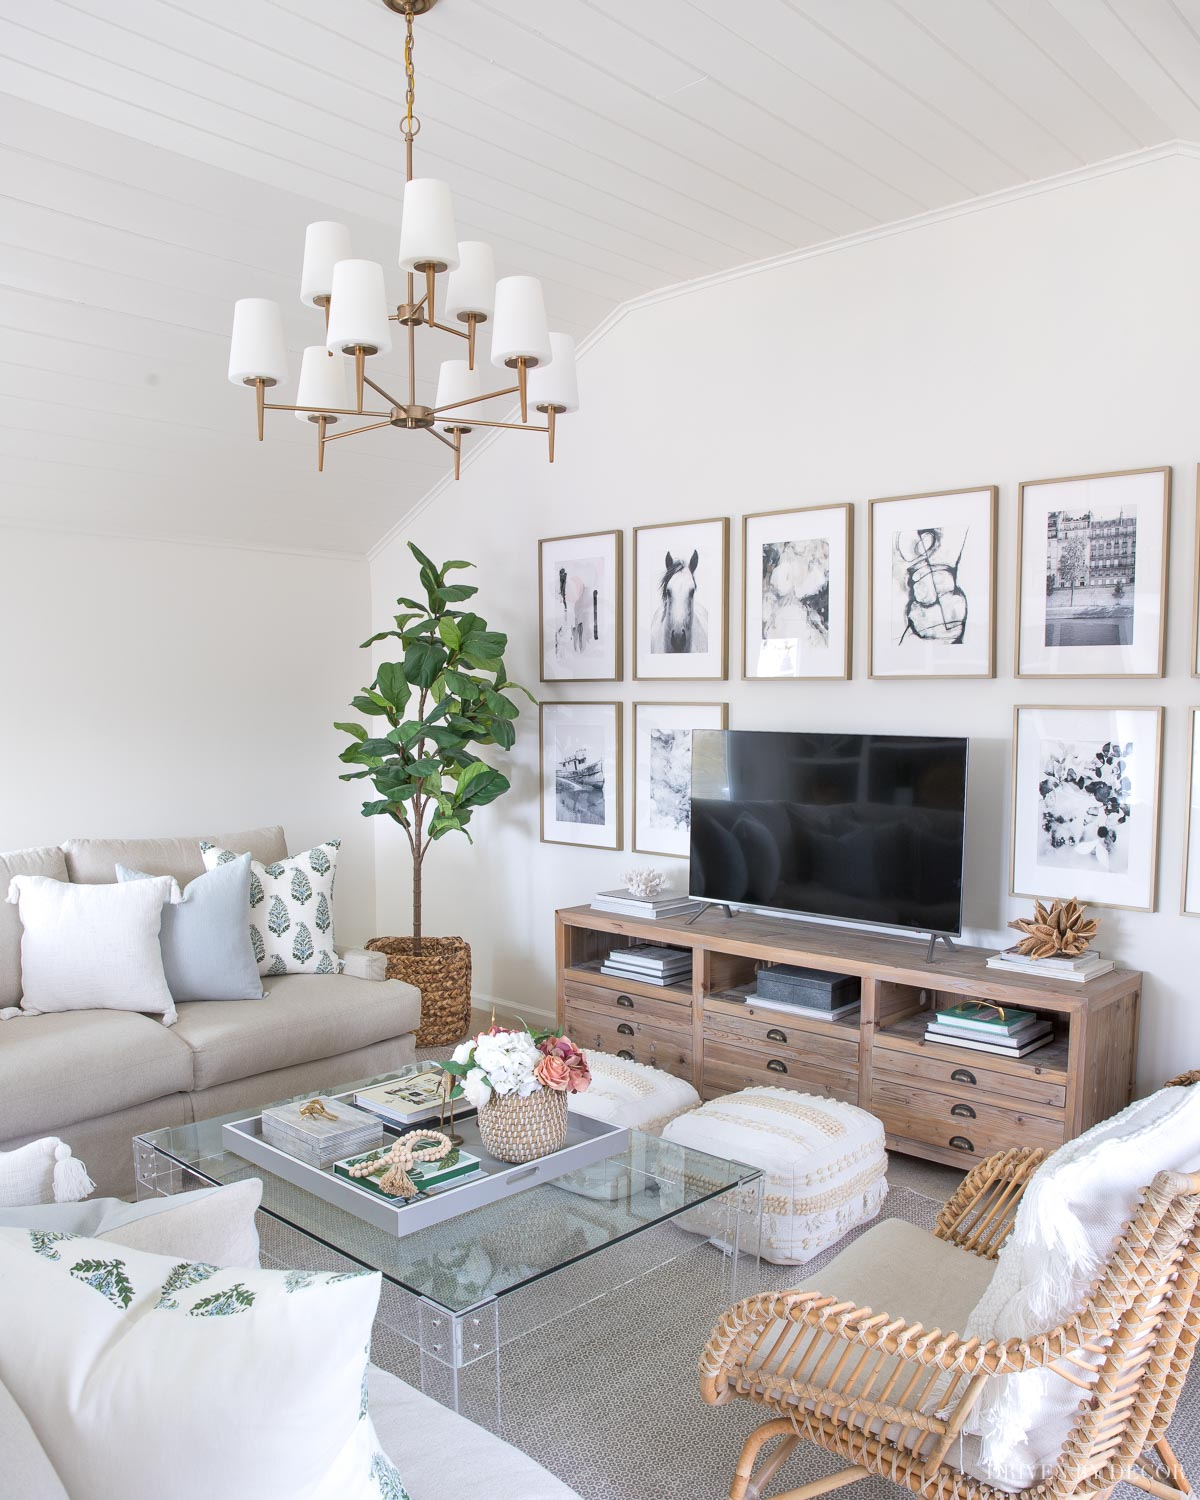 Our family room painted in Benjamin Moore Cloud White paint color